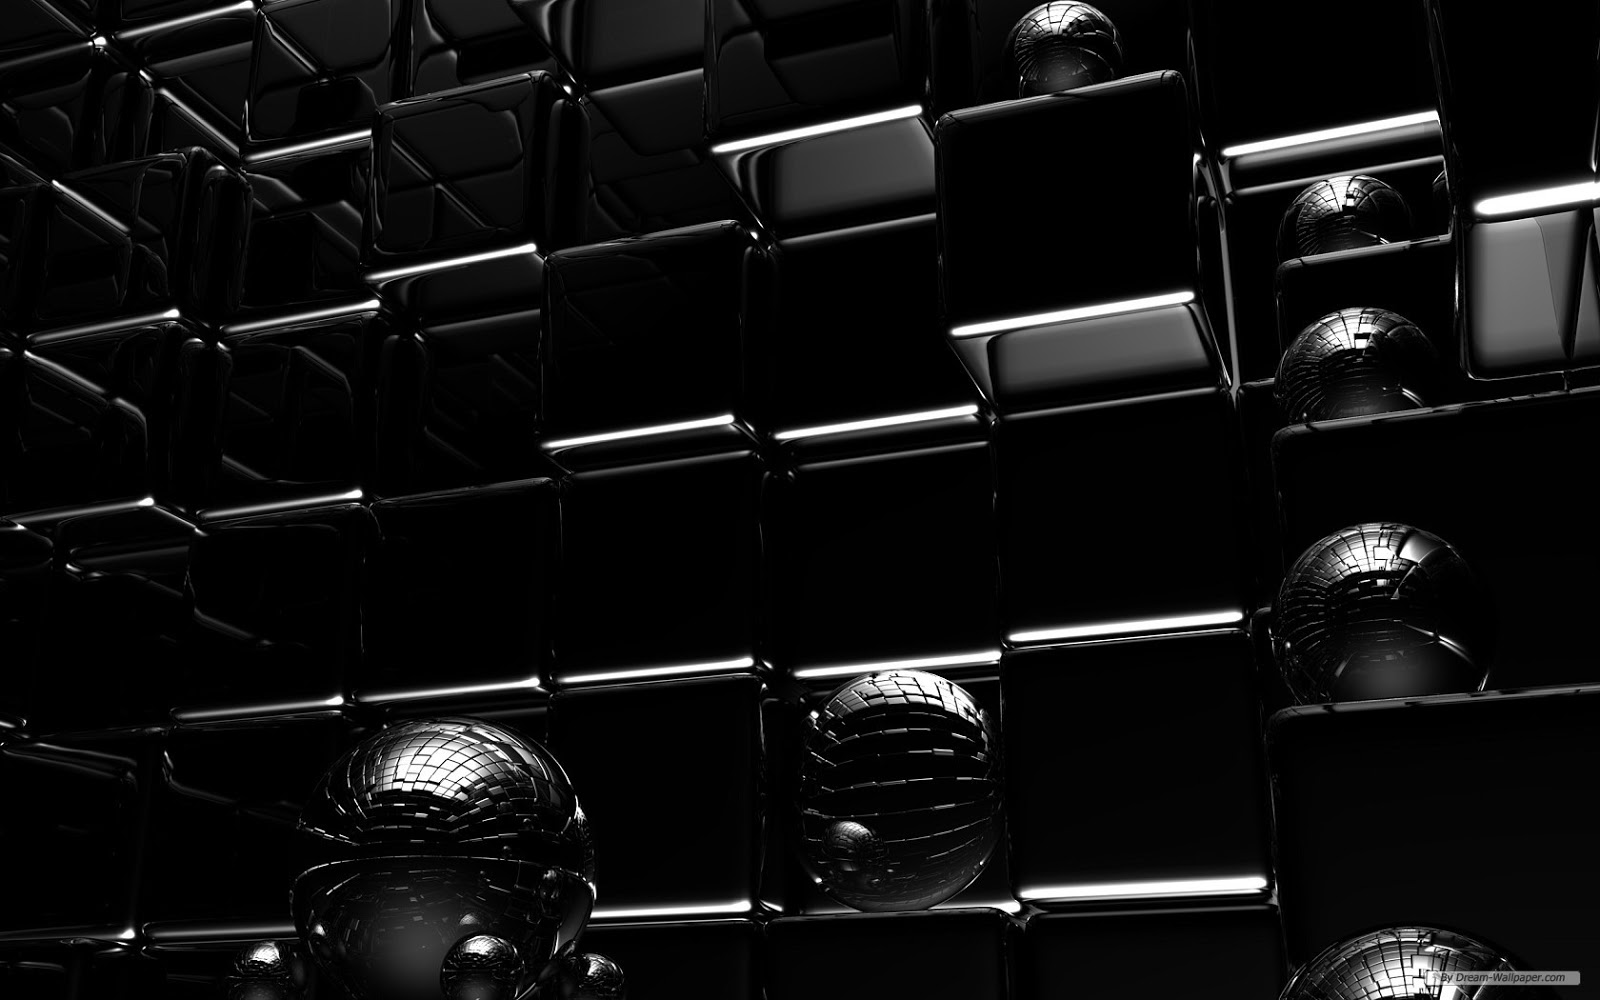 Black wallpaper 3d free download wallpaper dawallpaperz for Black and white wallpaper 3d